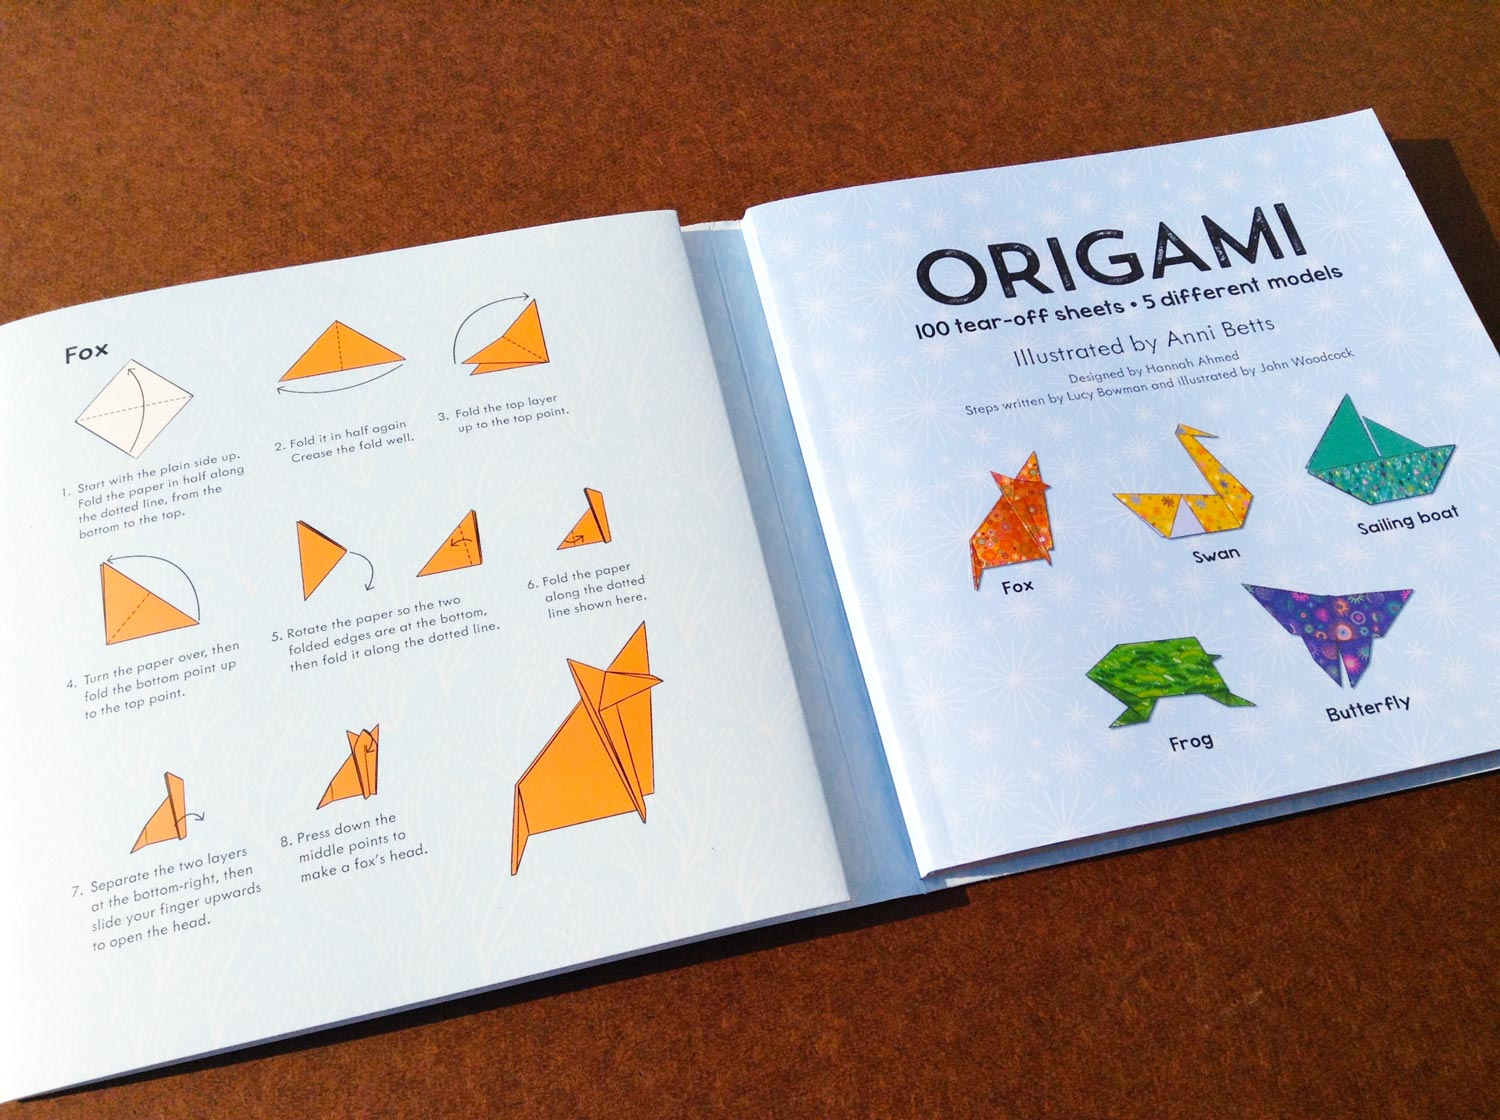 Anni_Betts_Origami_Book_Inside_Cover